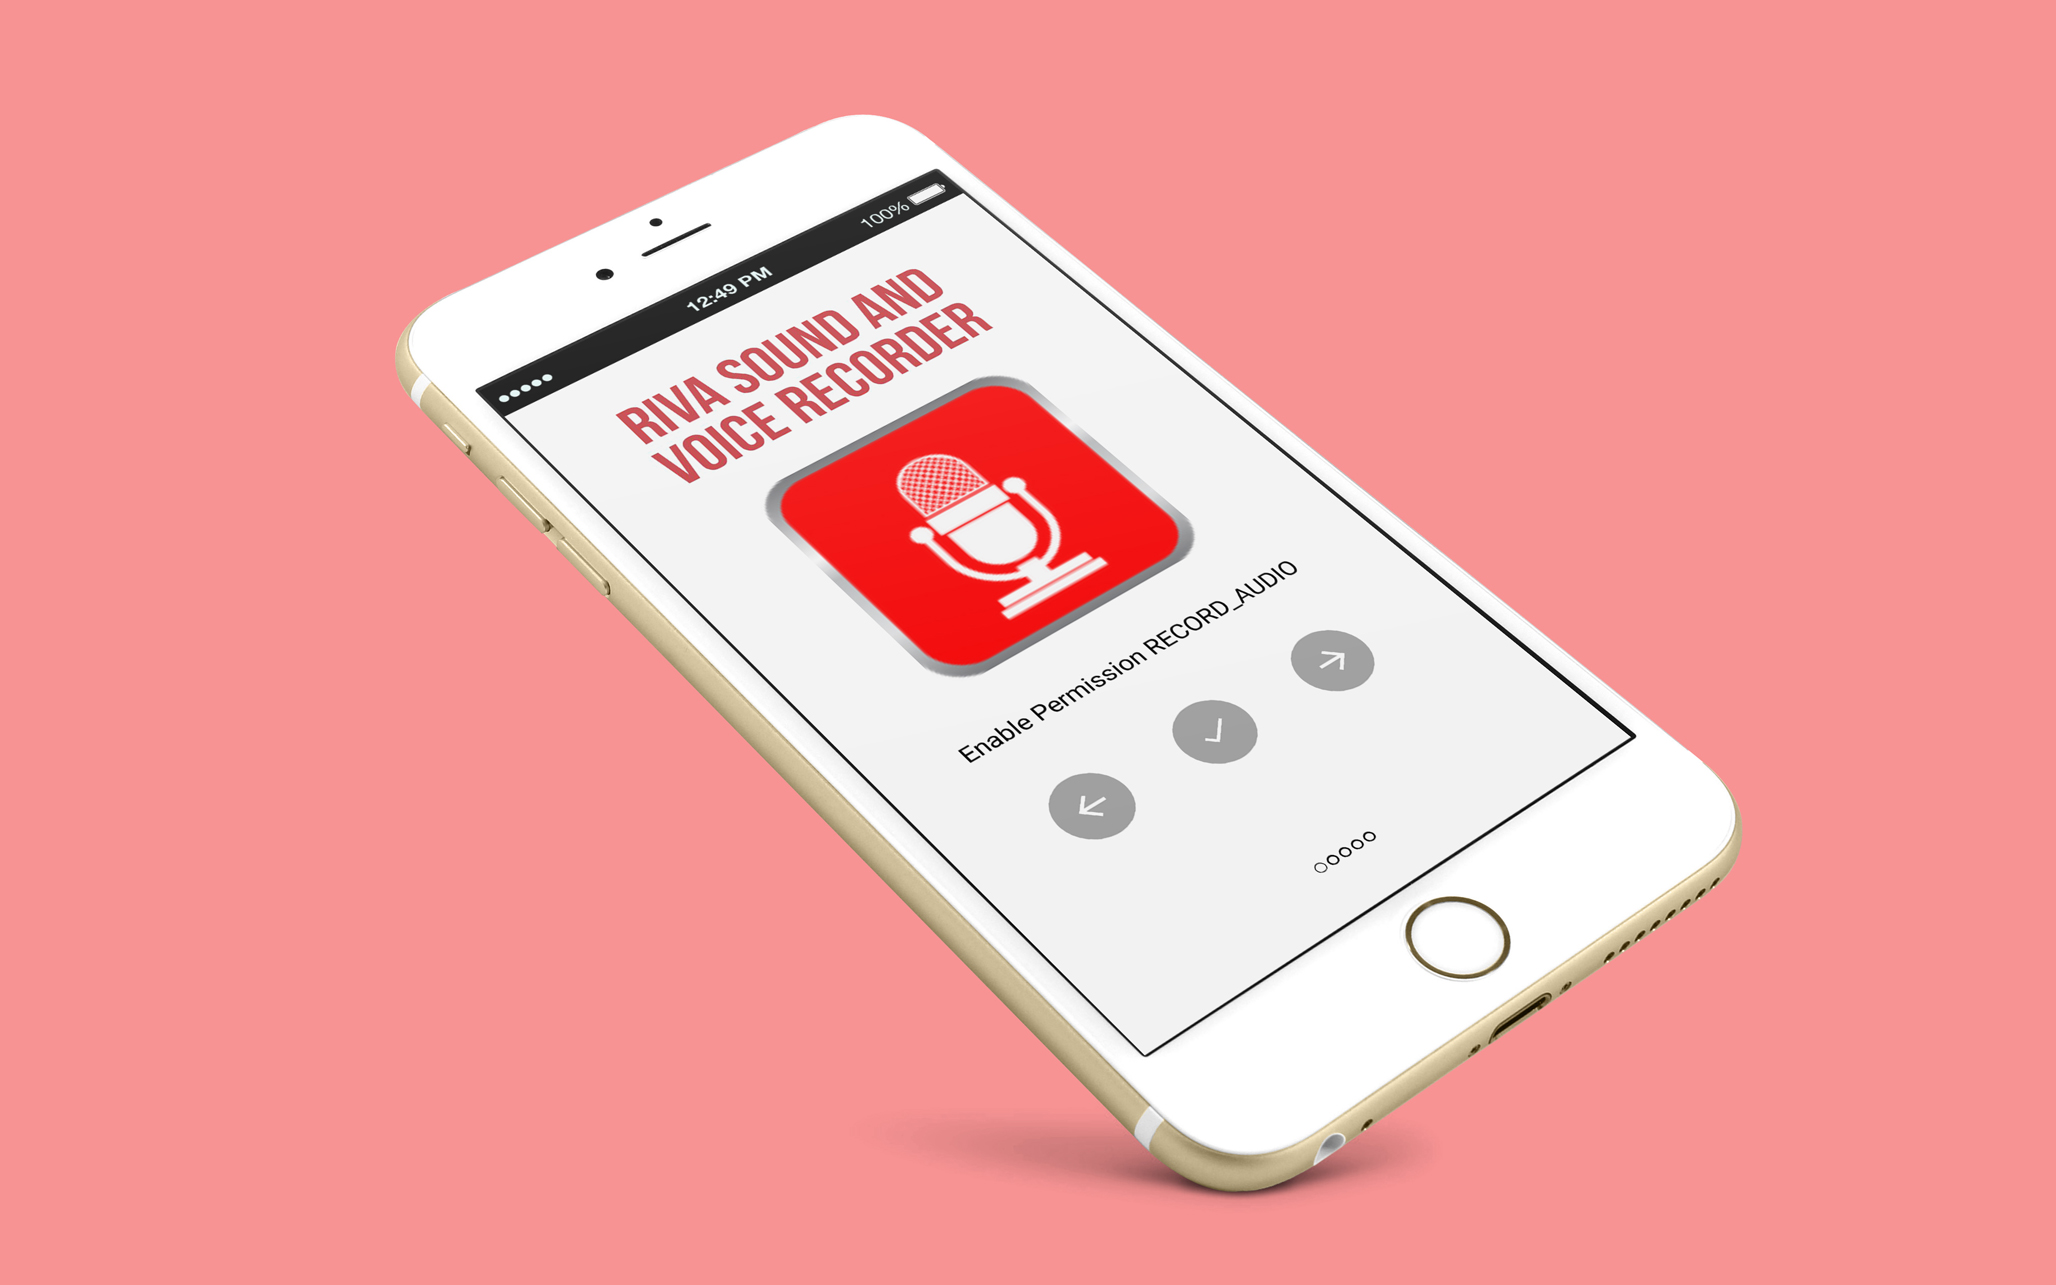 Sound And Voice Recorder